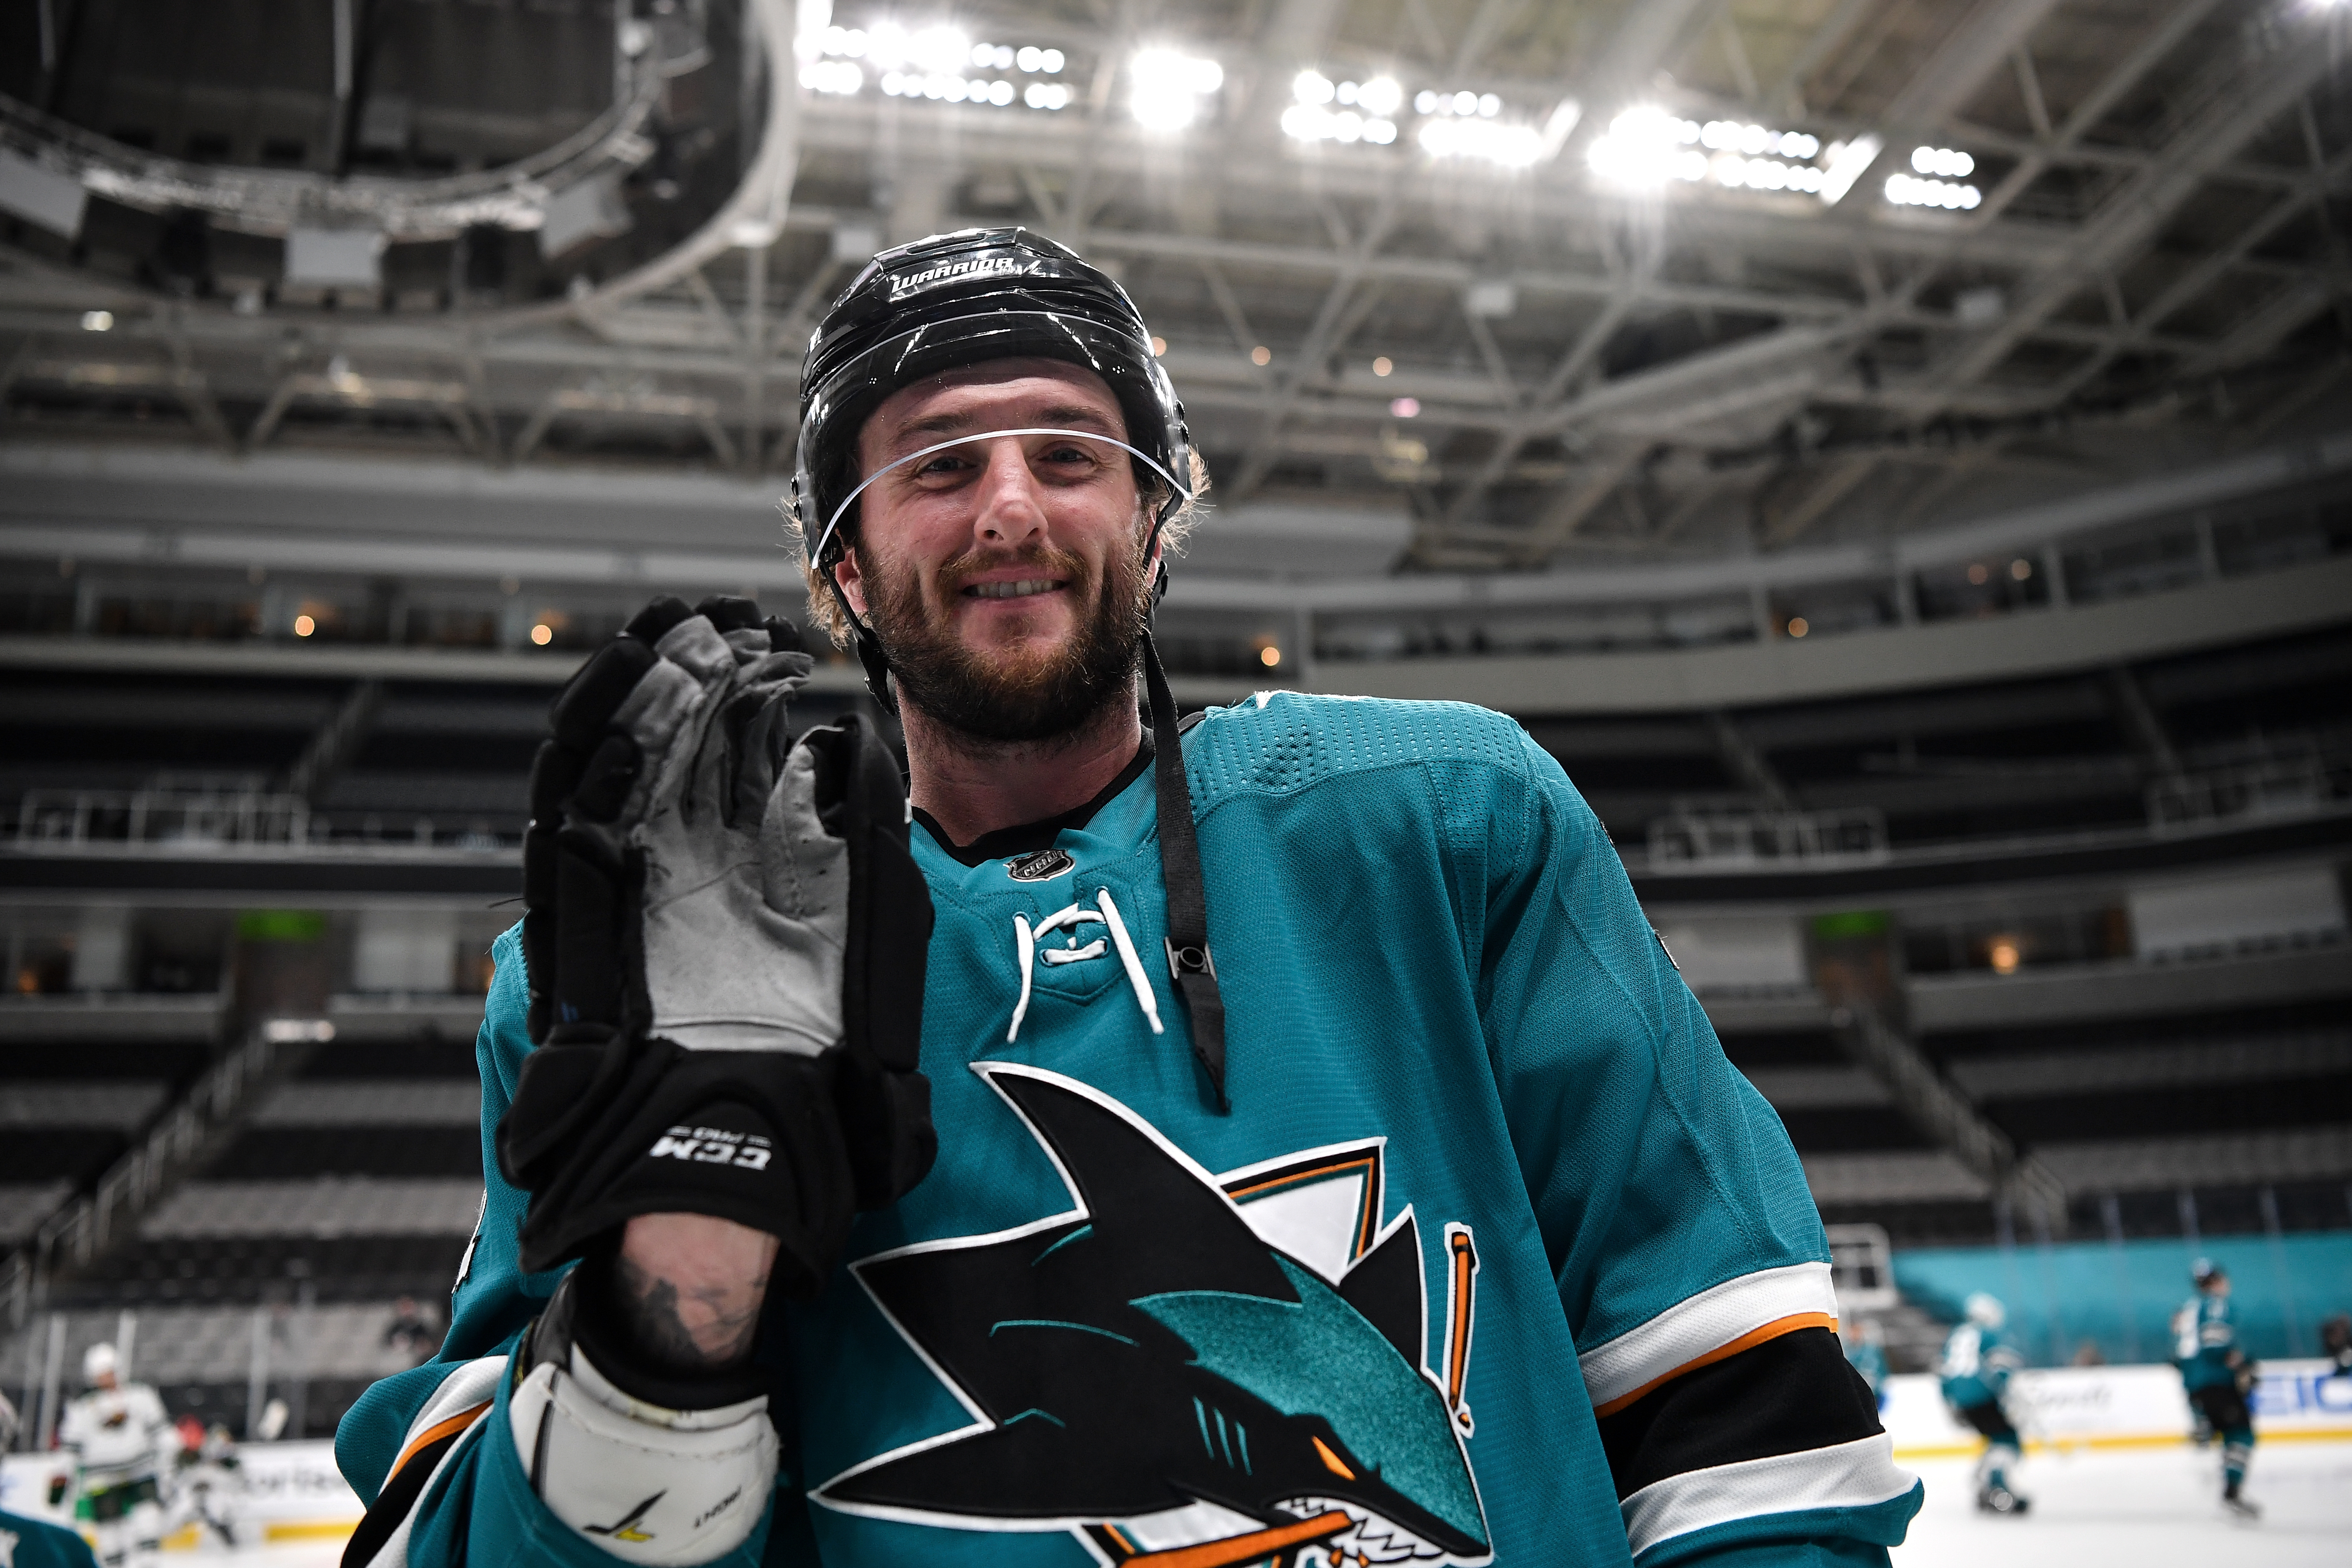 Stefan Noesen #11 of the San Jose Sharks smiles during warmups against the Minnesota Wild at SAP Center on February 22, 2021 in San Jose, California.